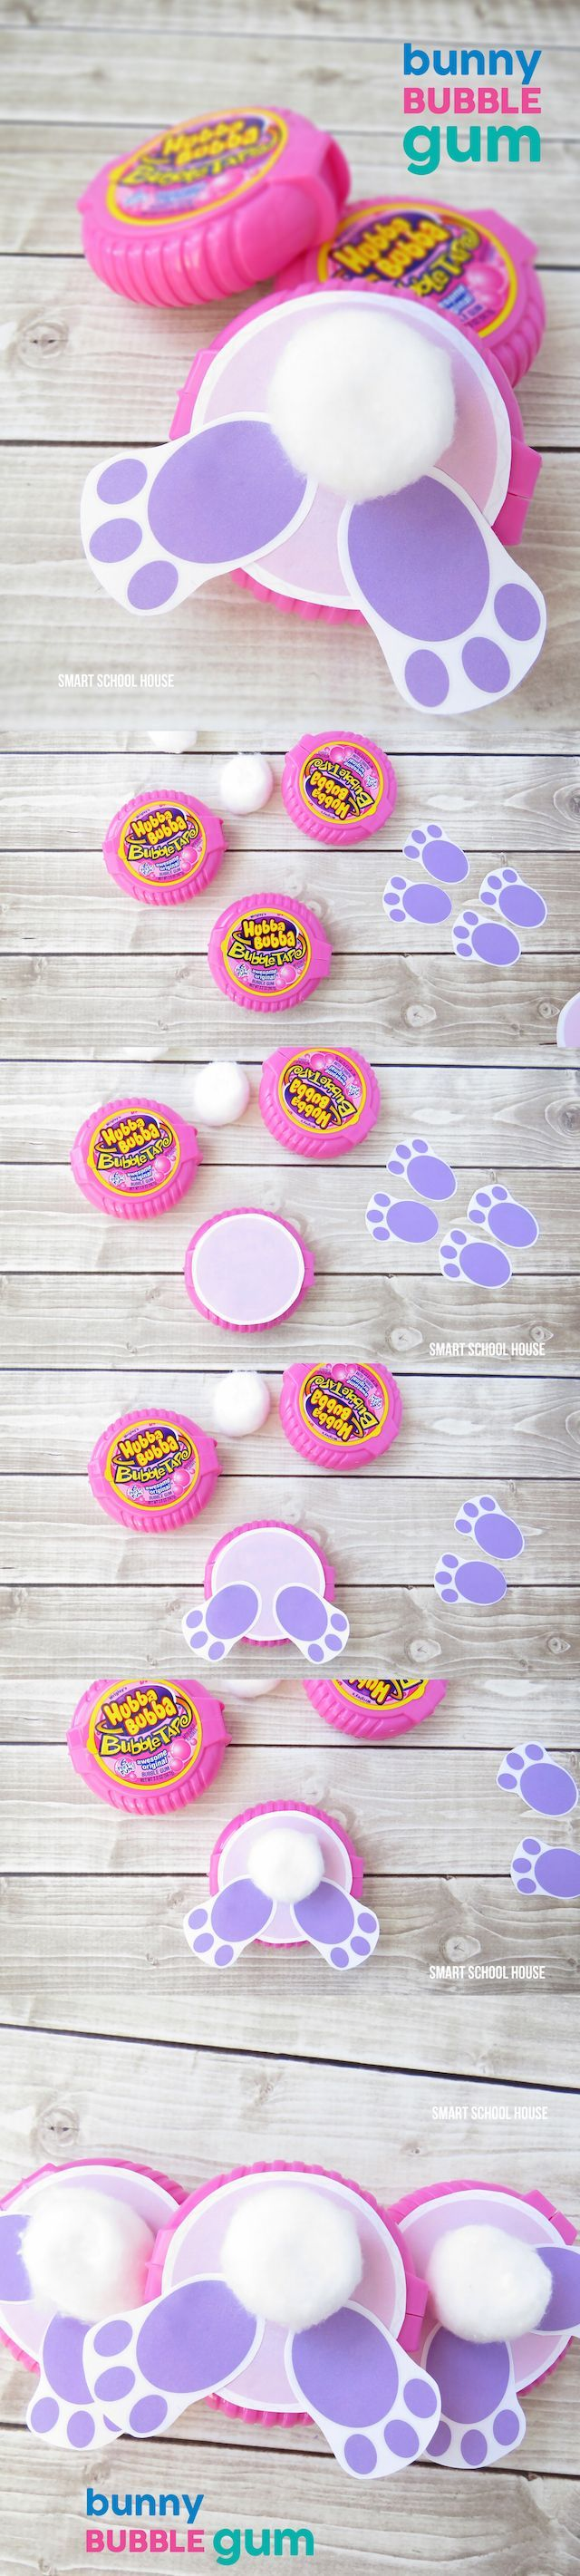 540 best easter crafts images on pinterest easter easter decor bunny bubble gum there are so many fun ways to give easter gifts to friends family and teachers todays easy bunny bubble gum craft is one that anybody negle Gallery